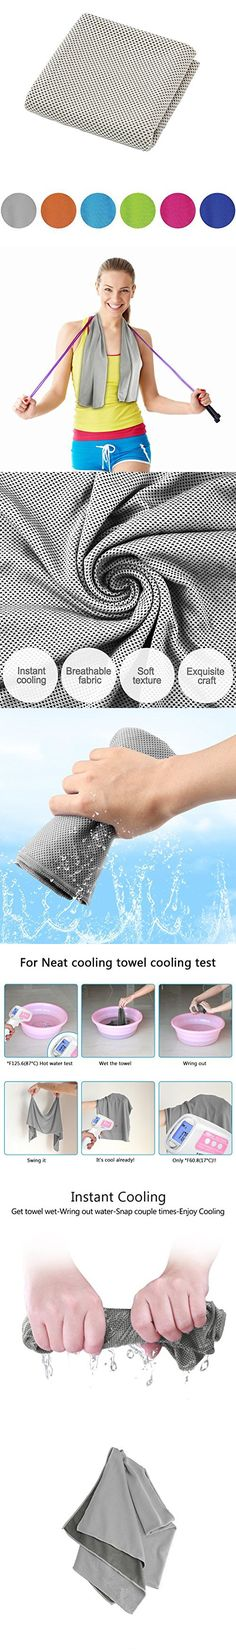 """Eastsure 1PCS Yoga Towel Instant Cooling Relief Microfiber Quickly Dry for Fitness, Gym & Yoga, Hiking & Running and Other Sports 39""""x12"""" Grey"""